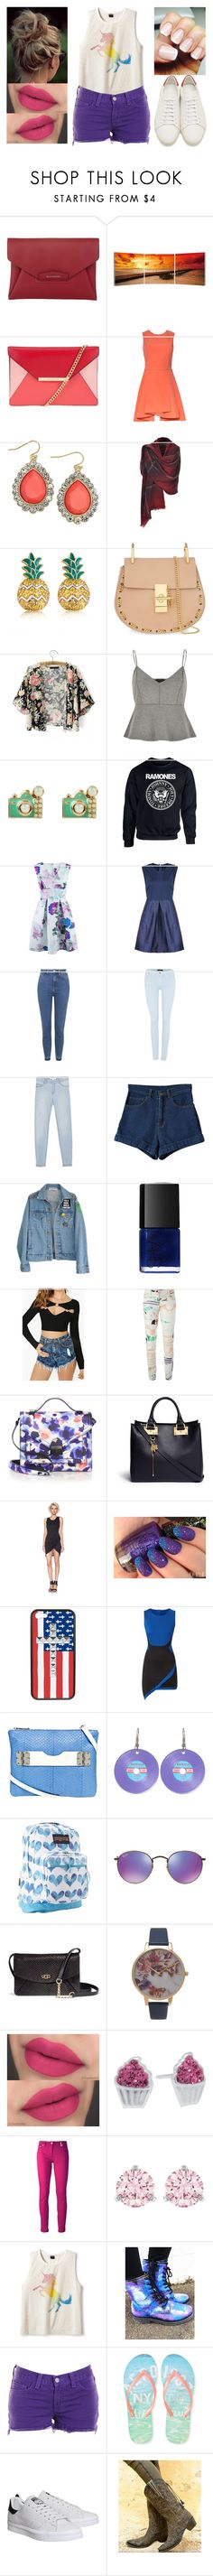 """0217"" by doglover43 ❤ liked on Polyvore featuring Givenchy, Elementem Photography, MICHAEL Michael Kors, Alice + Olivia, Thalia Sodi, MBLife.com, Chloé, River Island, Accessorize and Closet"